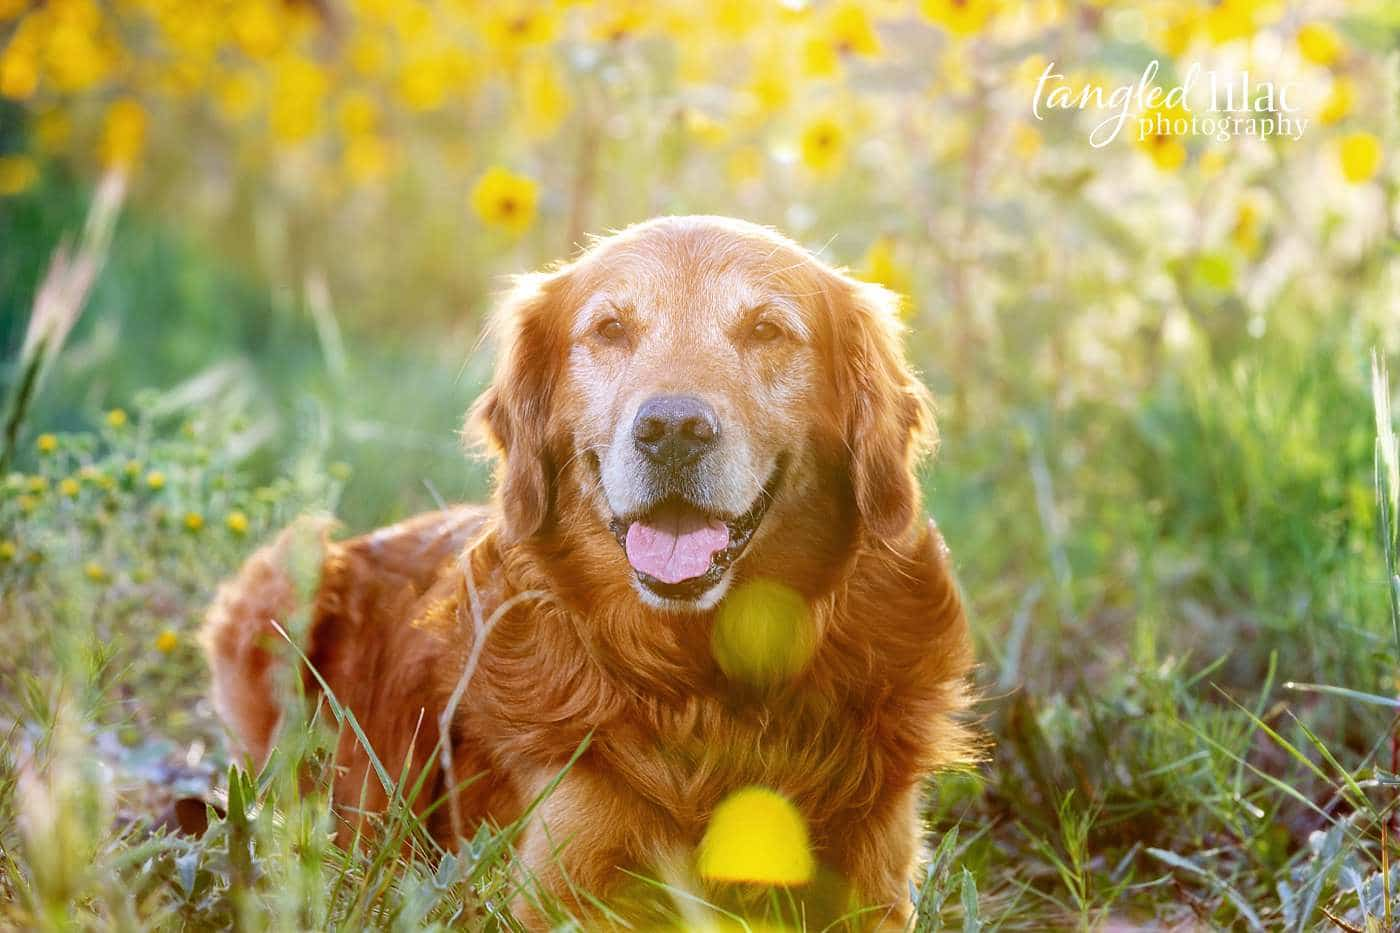 Old dog laying in sunflowers thinking about how much he loves his owner